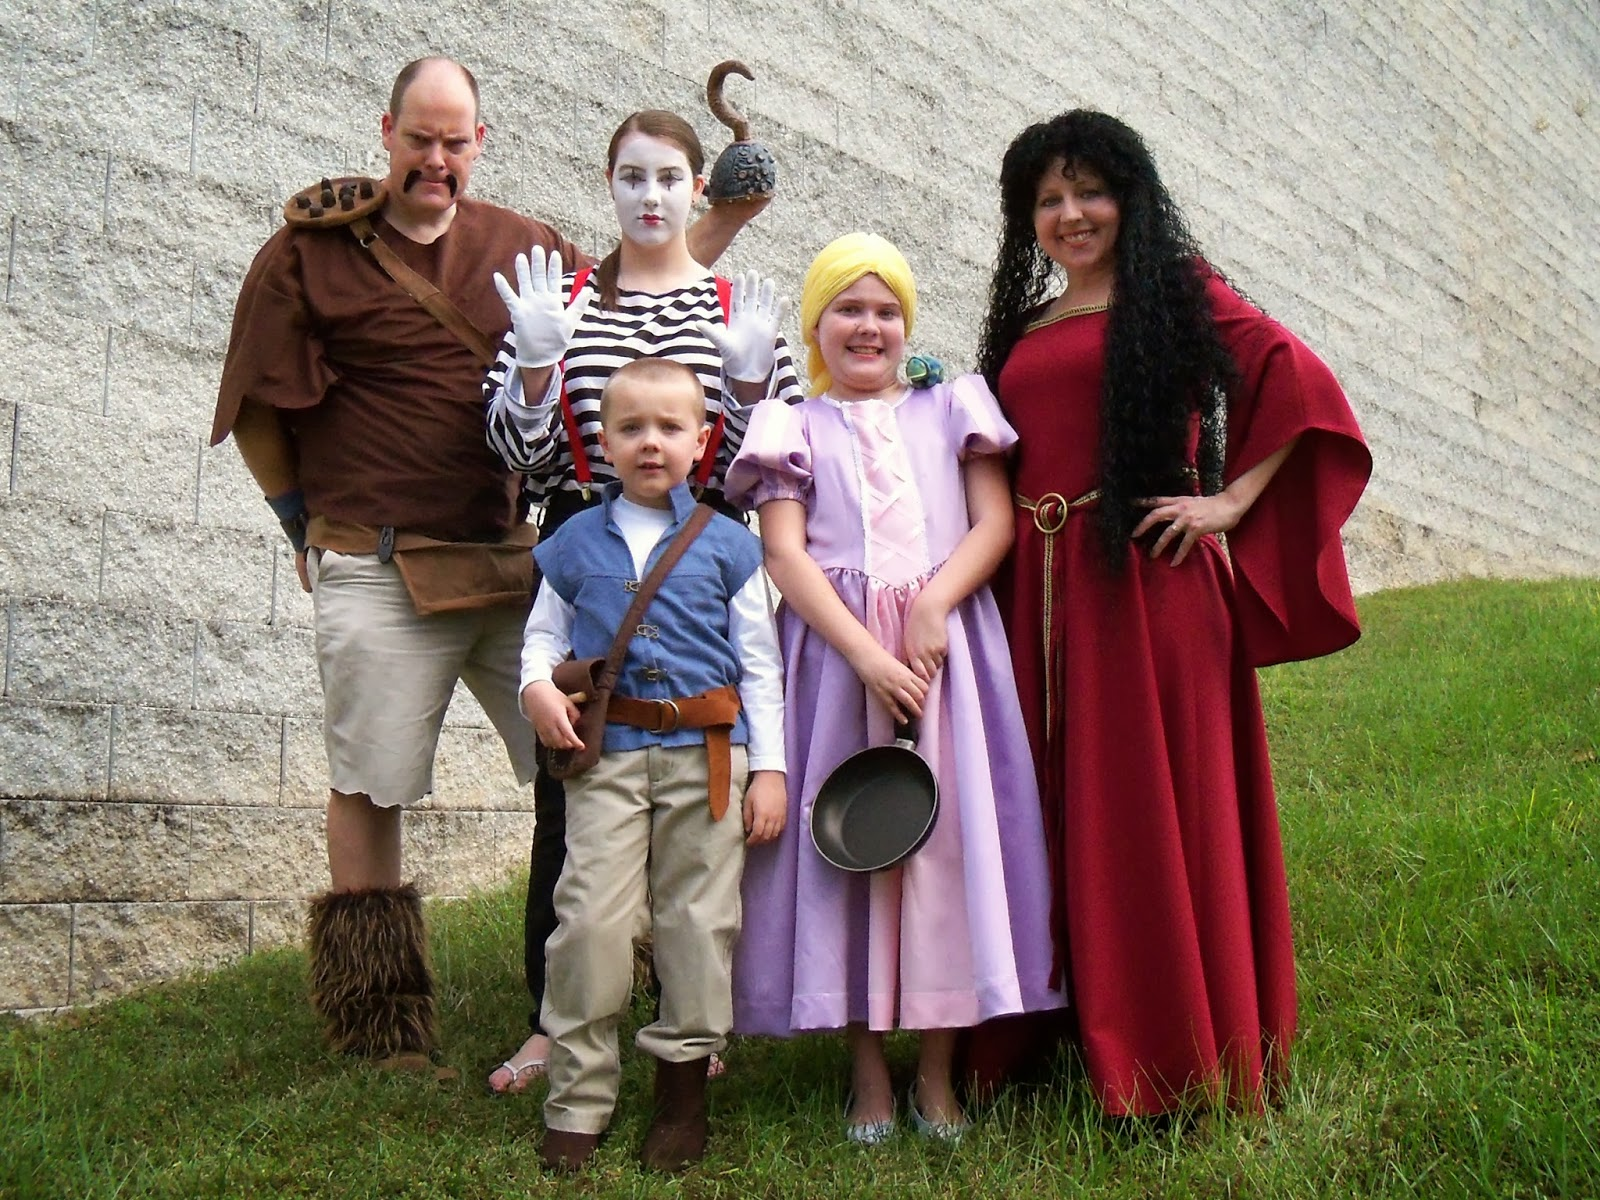 bird on a cake: tangled family halloween costumes